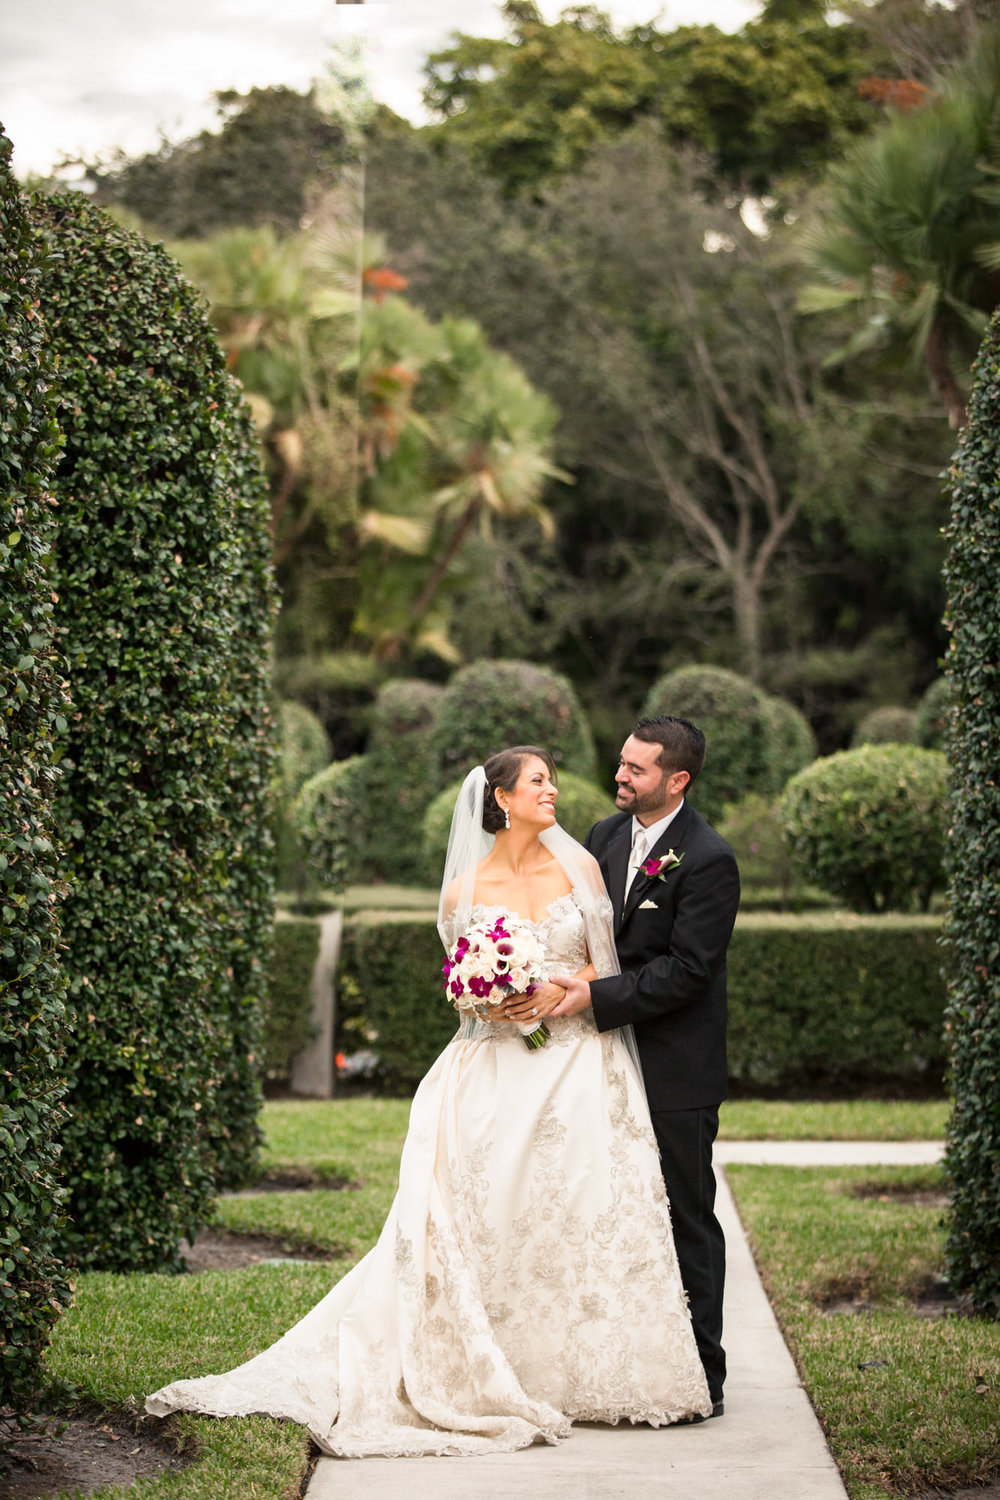 Benvenuto_Wedding_catholic_Florida_Bride-Groom-88.jpg